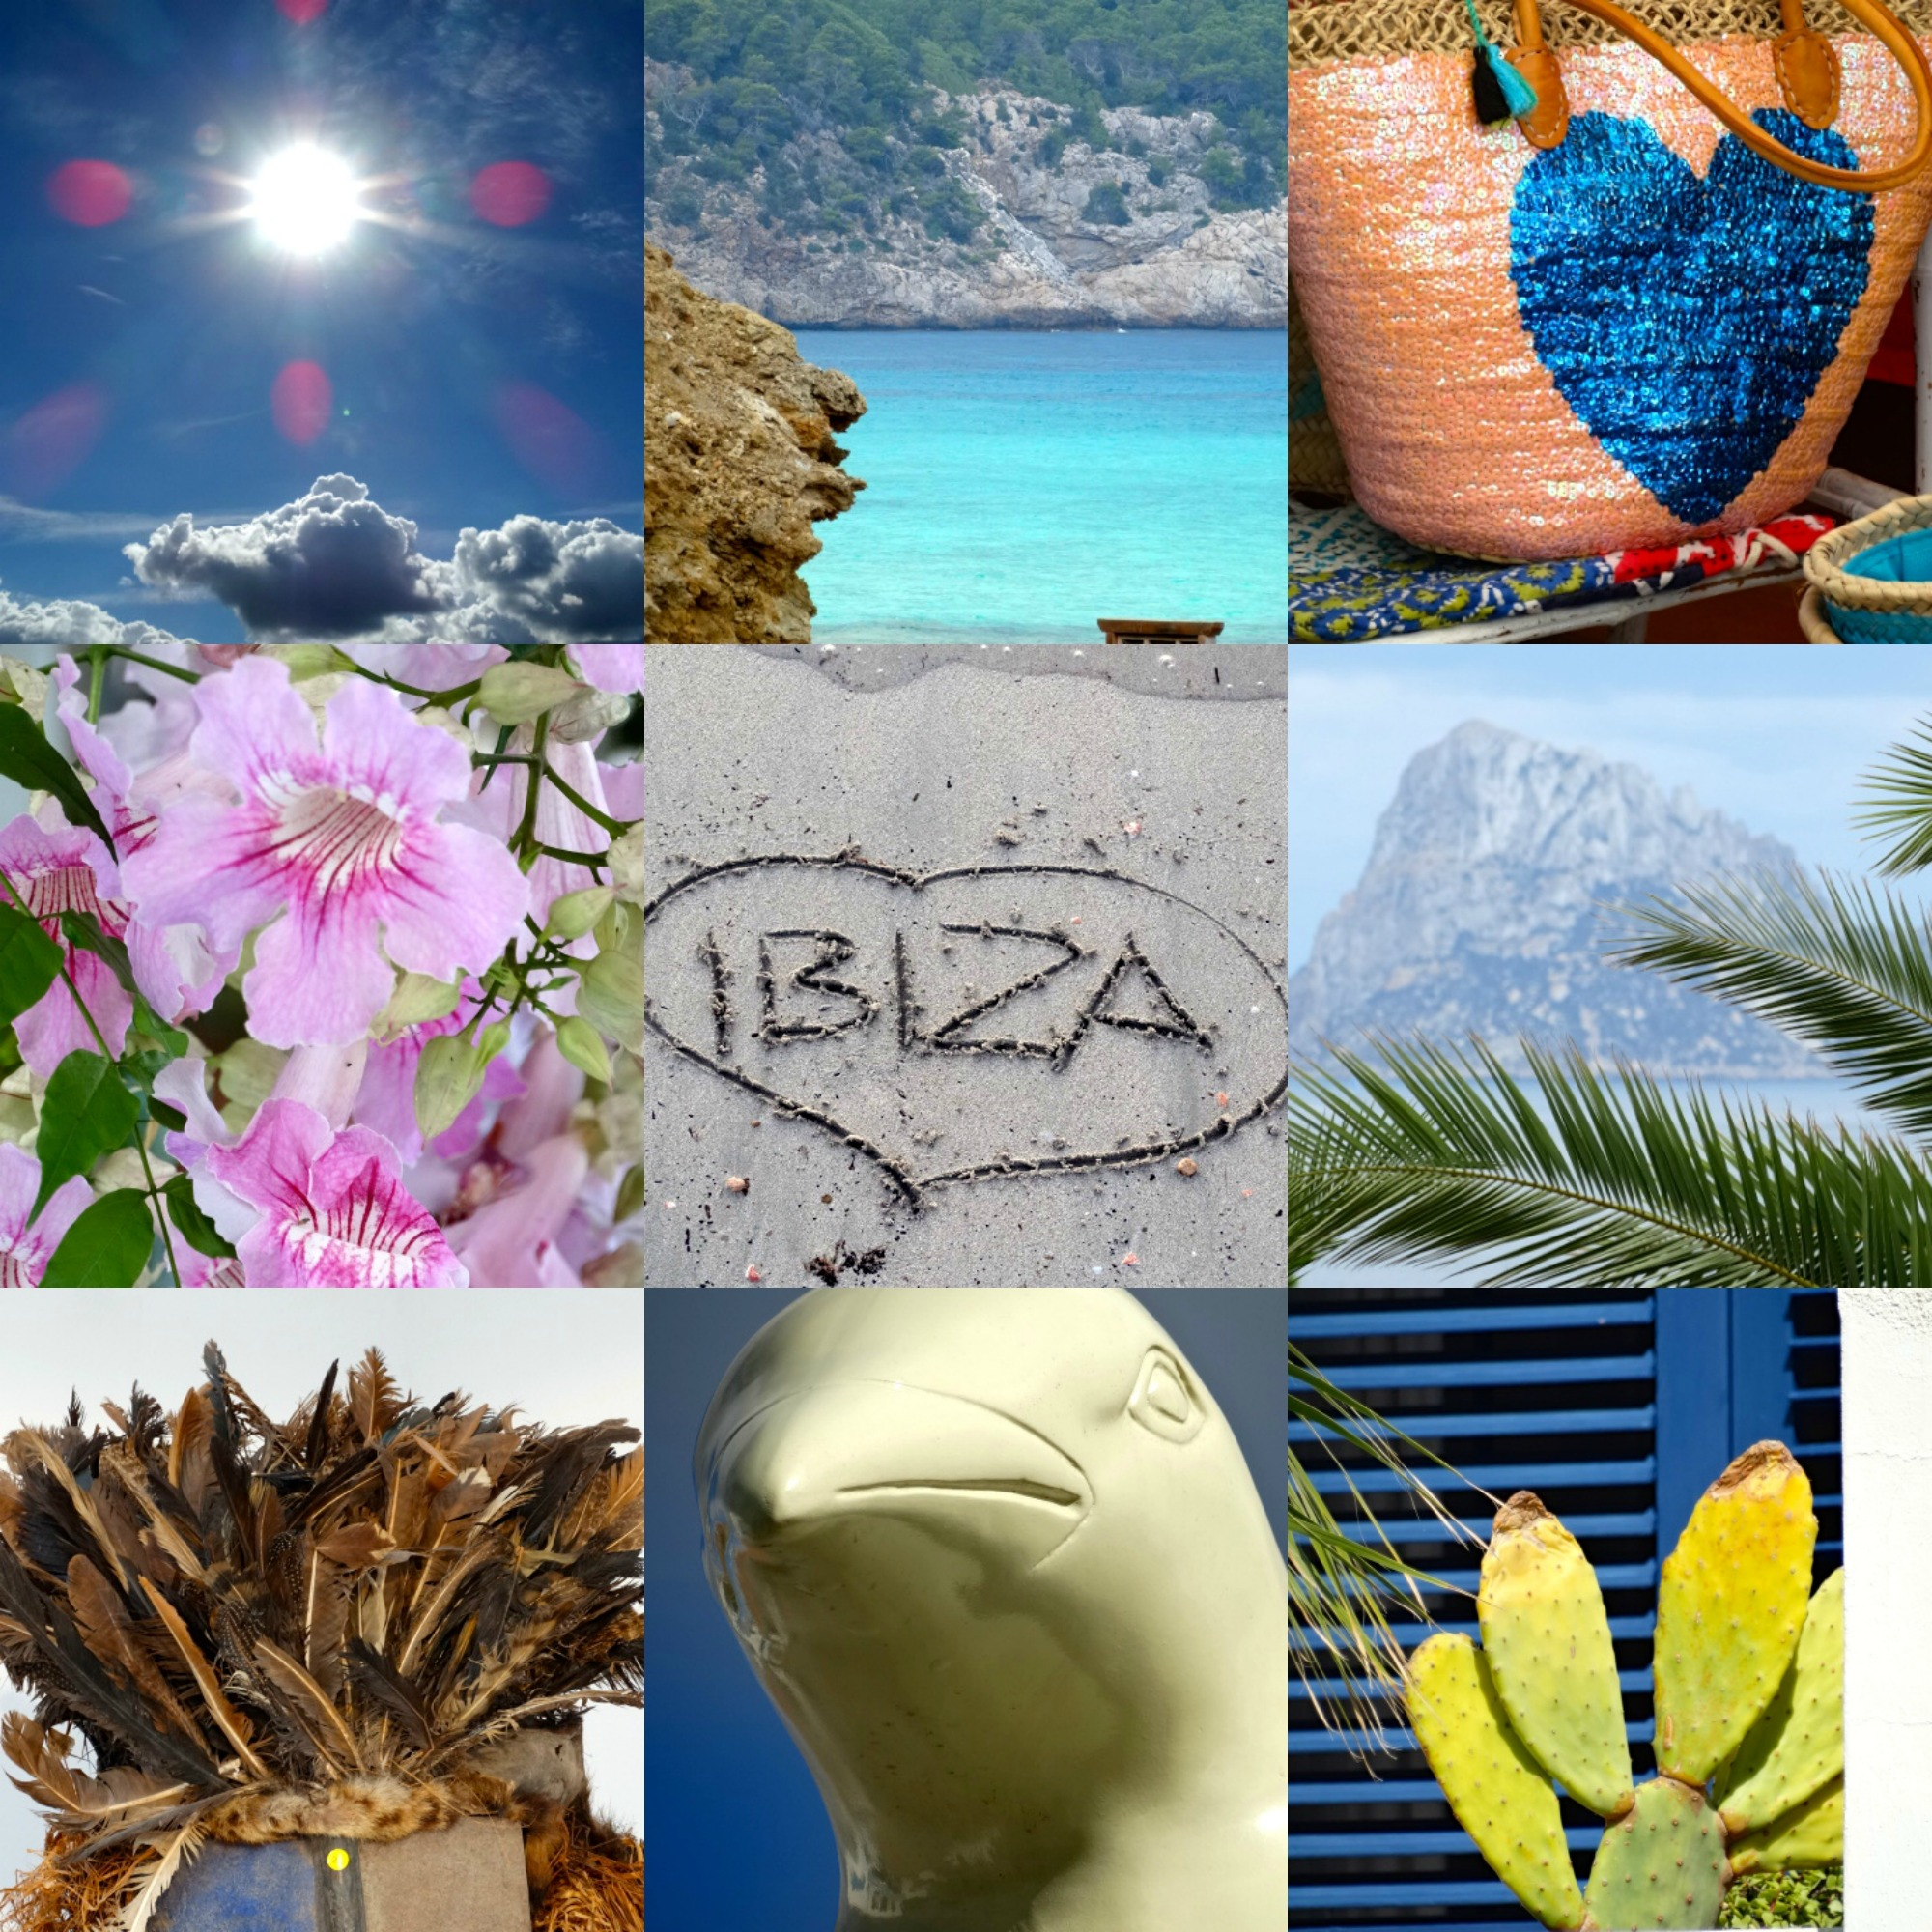 Ibiza. She is online